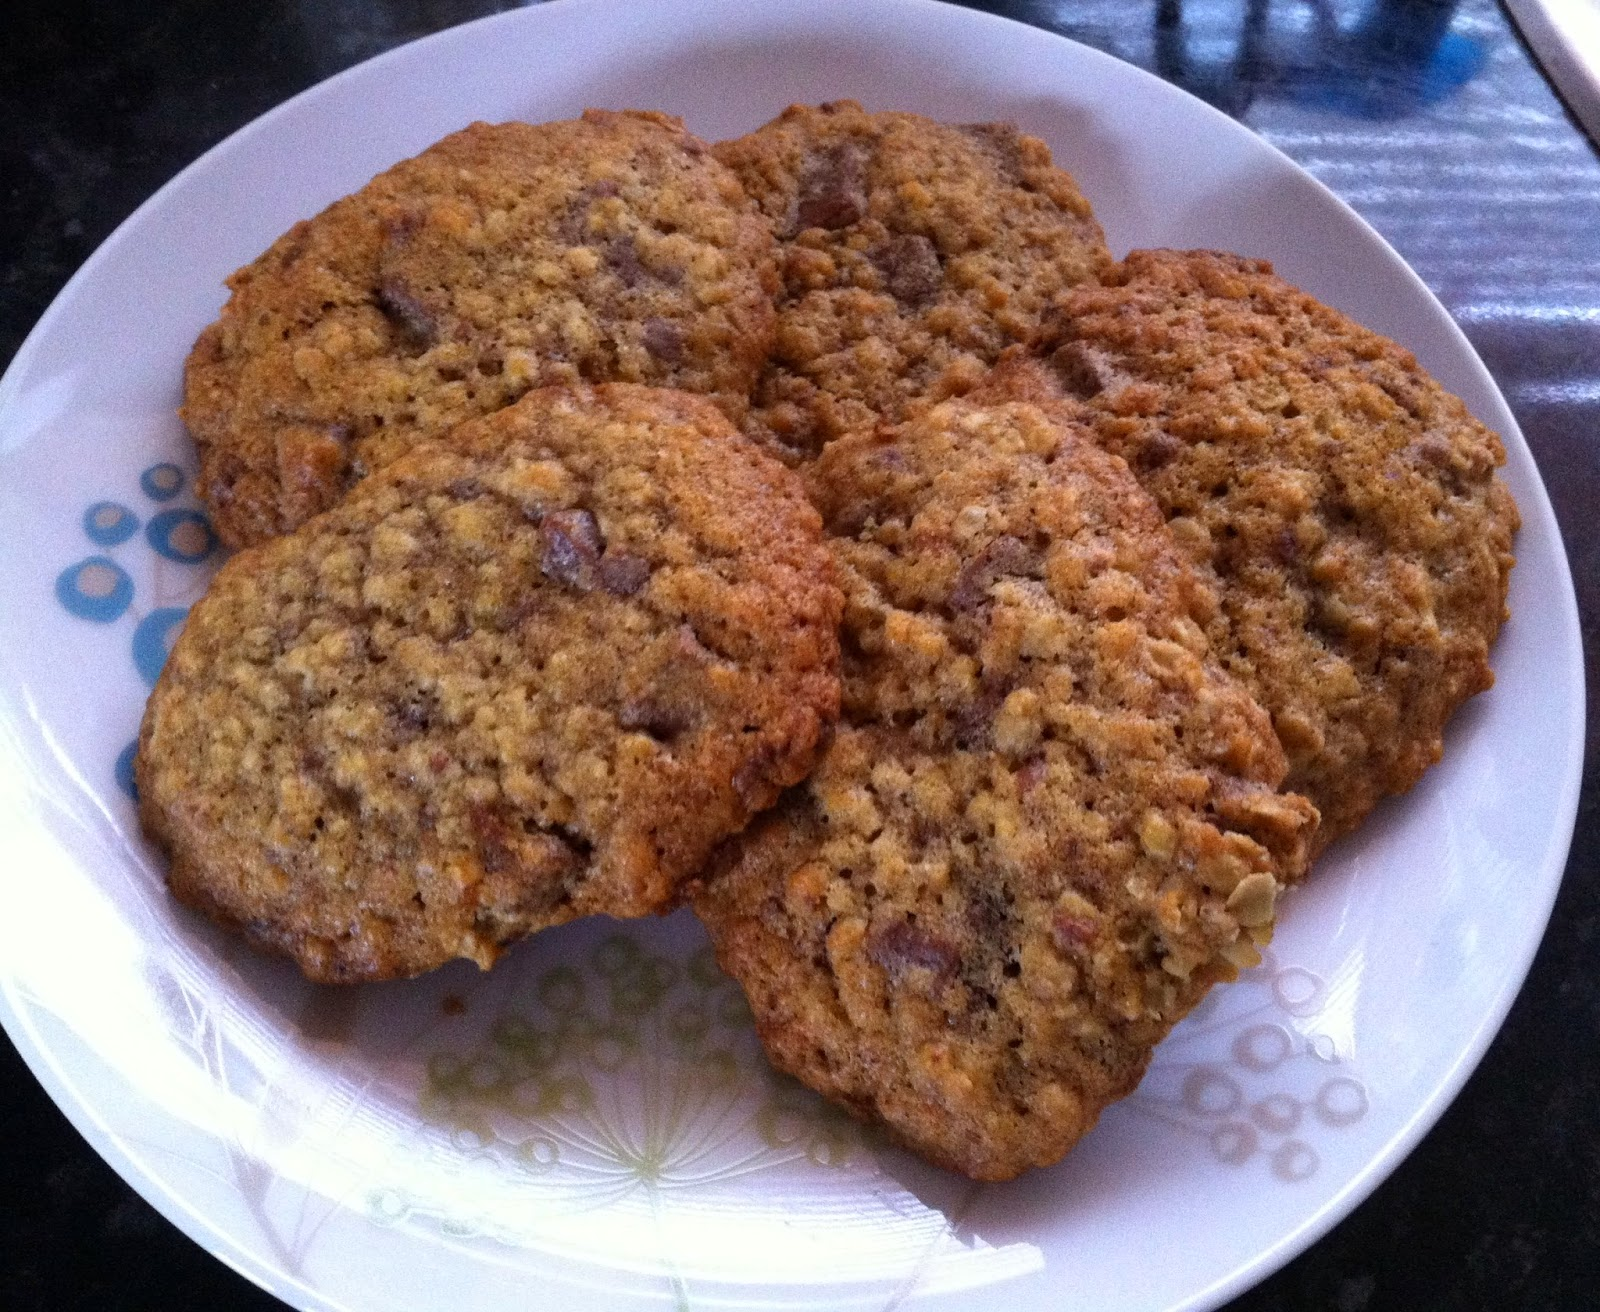 Oatmeal spice cookies, recipe from Green Card by Elizabeth Adams